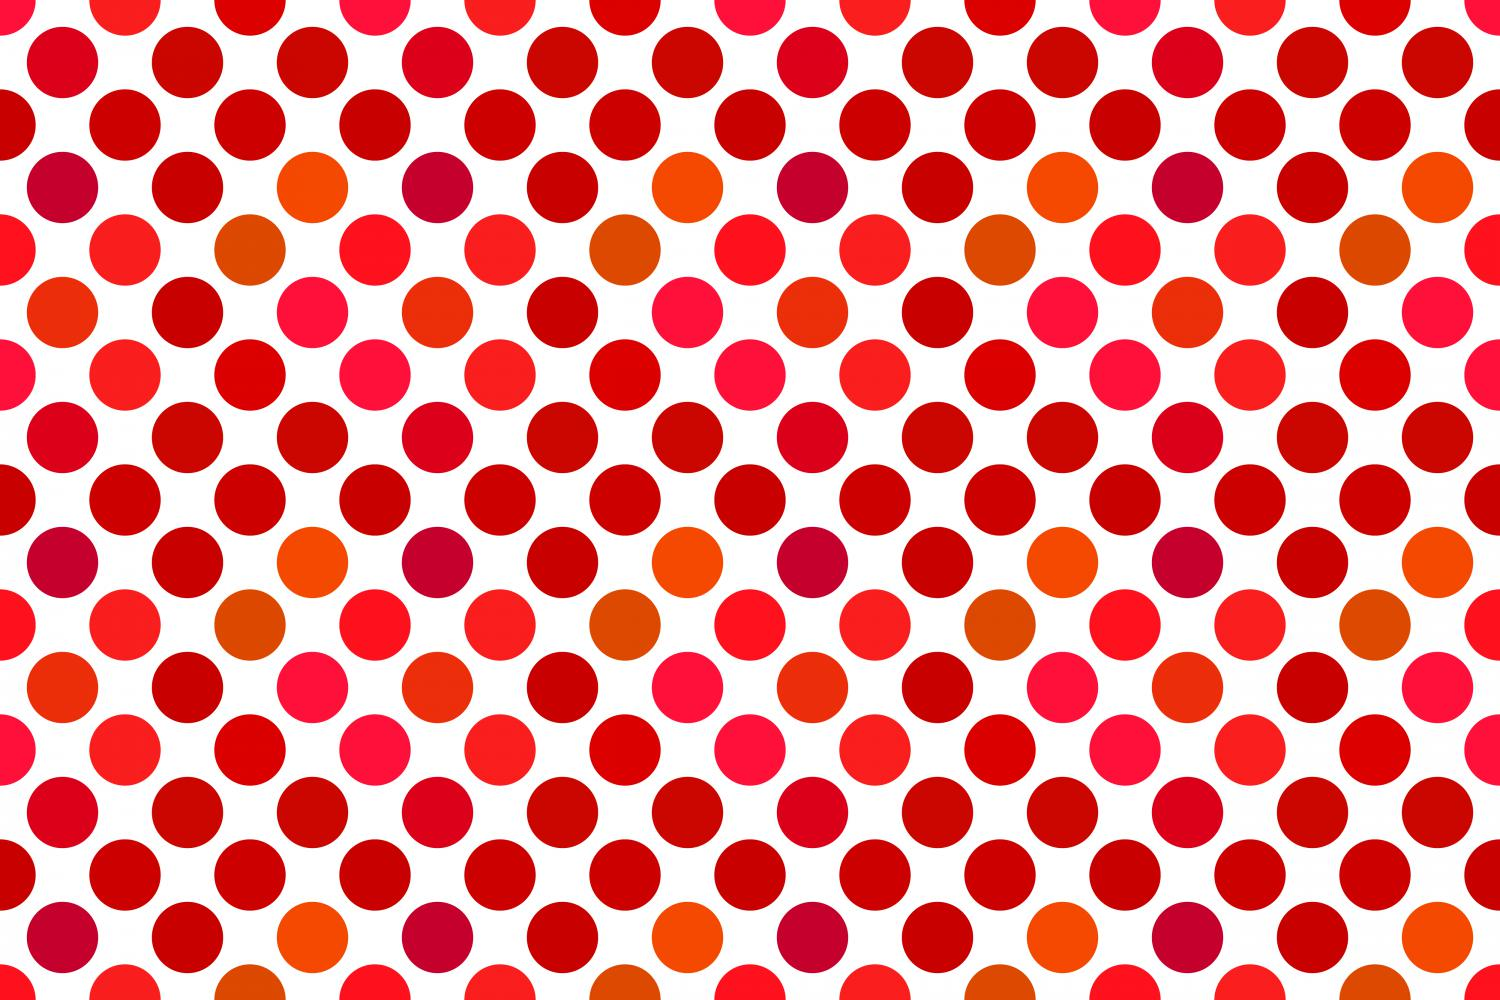 Download Free Seamless Red Dot Pattern Graphic By Davidzydd Creative Fabrica for Cricut Explore, Silhouette and other cutting machines.